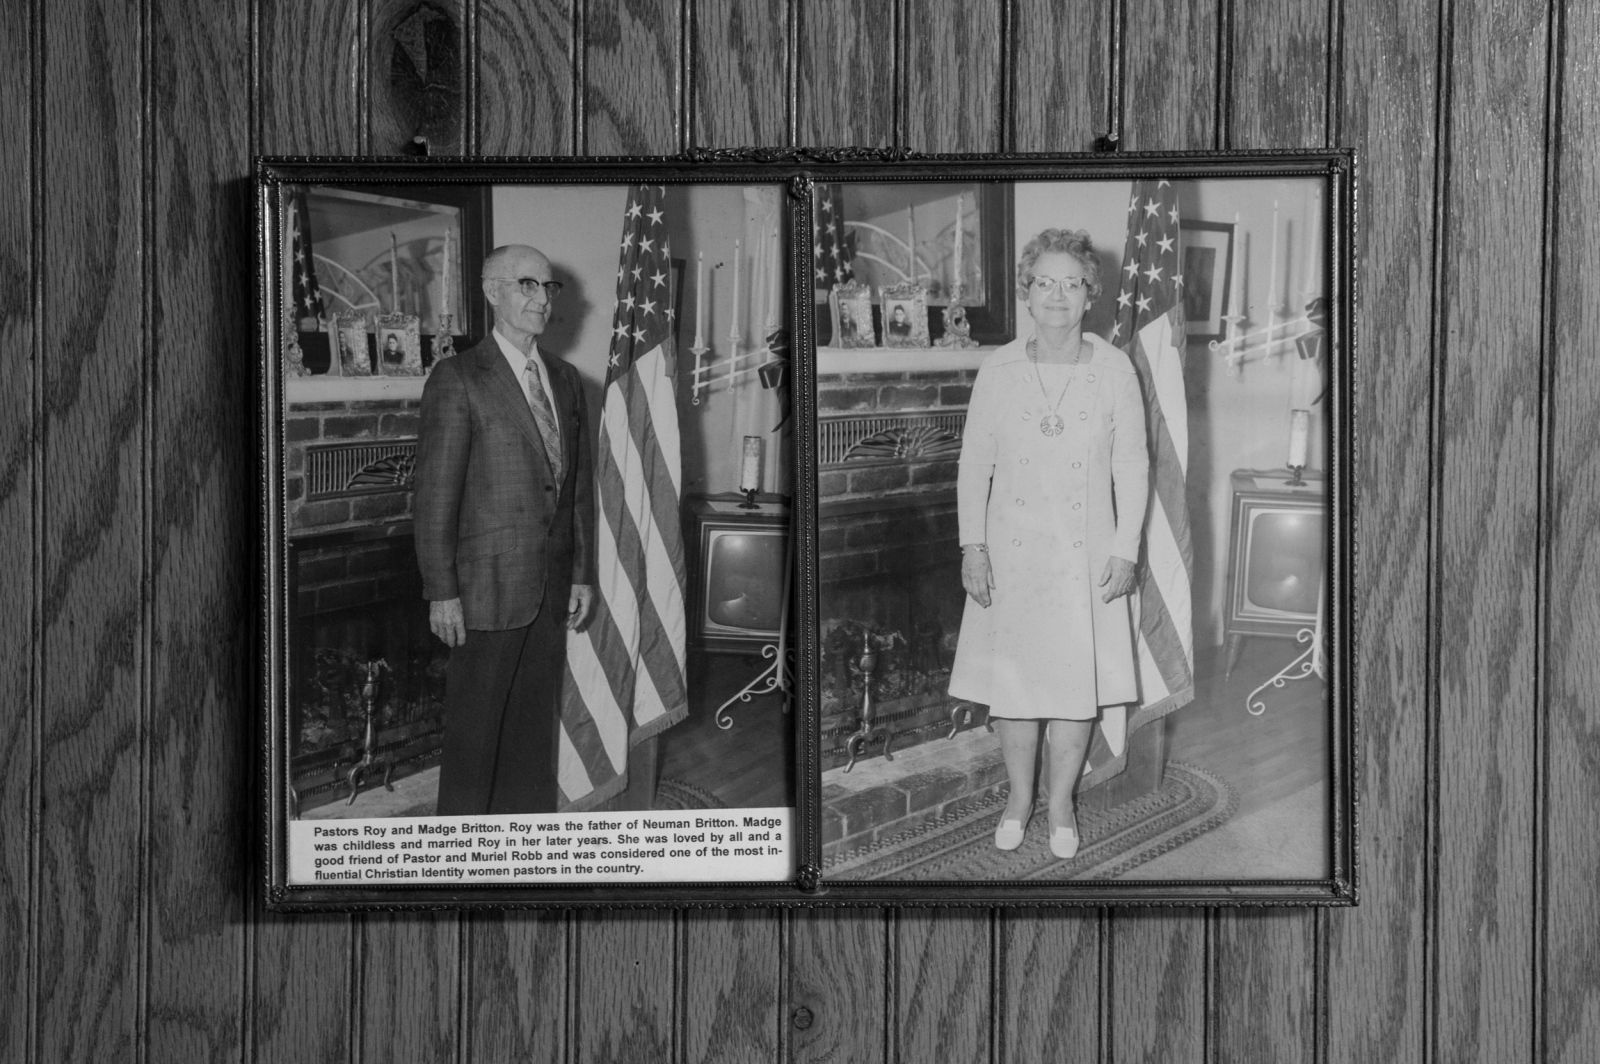 """Zinc, Arkansas.A photograph of Madge Britton (on right) hangs in the Knight's Party Church foyer. Pastor Britton was a fiery speaker who spoke to tent crowds up until her death in the late eighties when she was in her eighties herself. A good friend of Pastor Robb, this woman was active throughout the nation speaking out against integration, abortion, homosexuality, and globalism. She published a newsletter about the corruption in government which went to """"patriots"""" throughout the world. Pastor Britton had her own ministry and taught the Bible over a period of sixty years."""